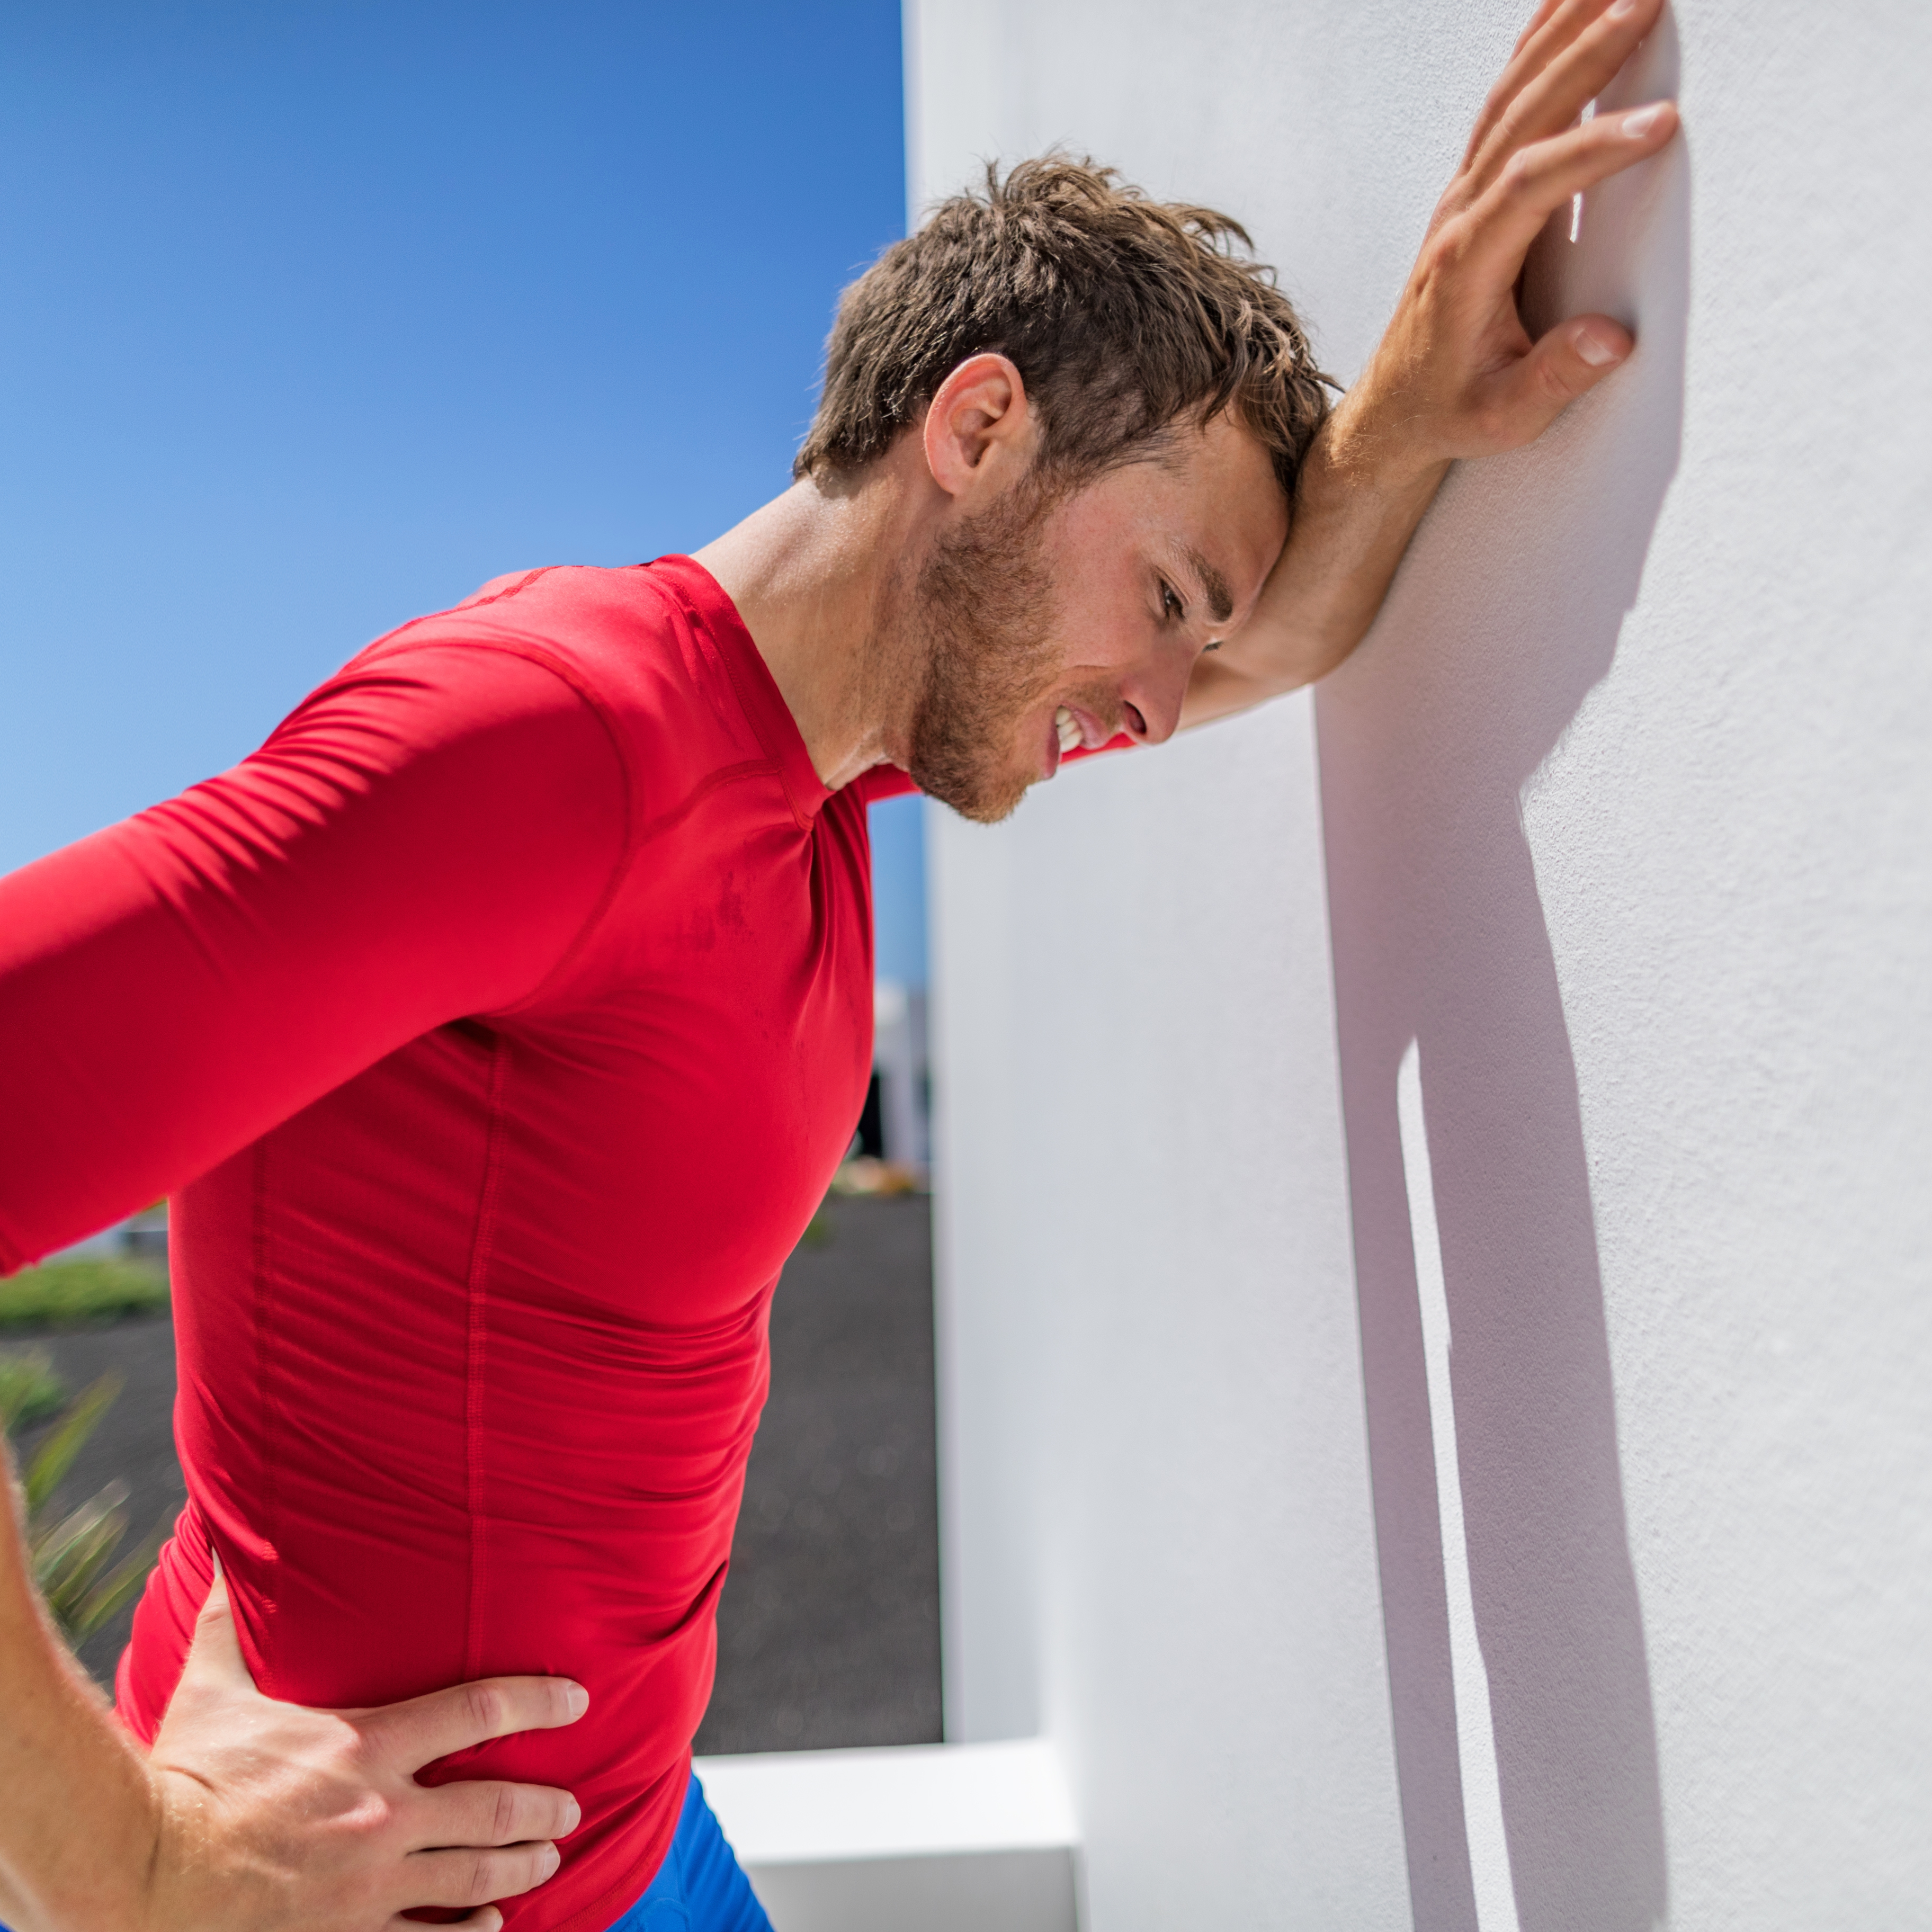 Exhausted male runner leaning on wall breathing hard after difficult exercise, perhaps with sun stroke, headache or heat exhaustion